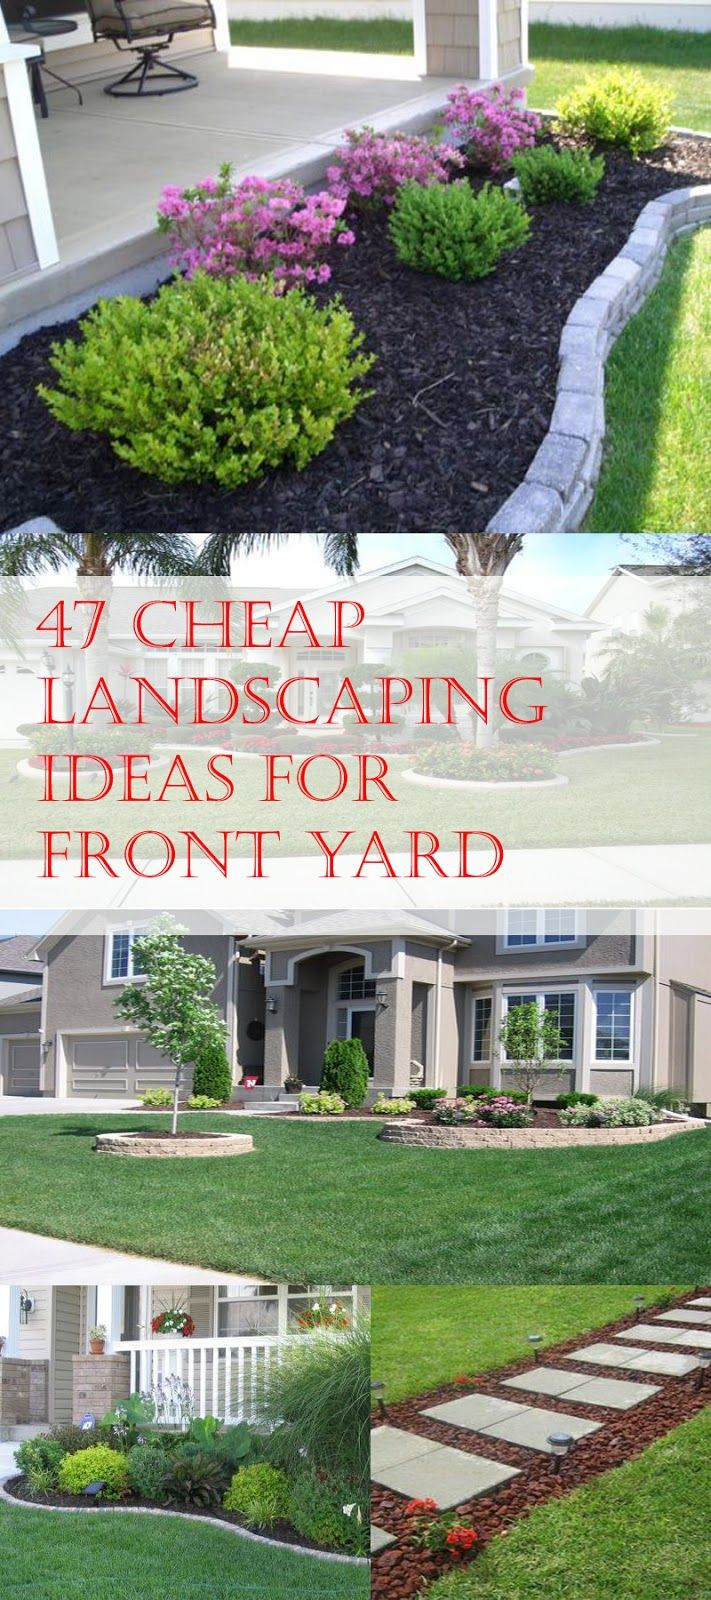 Best 25 front yard landscaping ideas on pinterest front for Cheap landscaping ideas for front yard